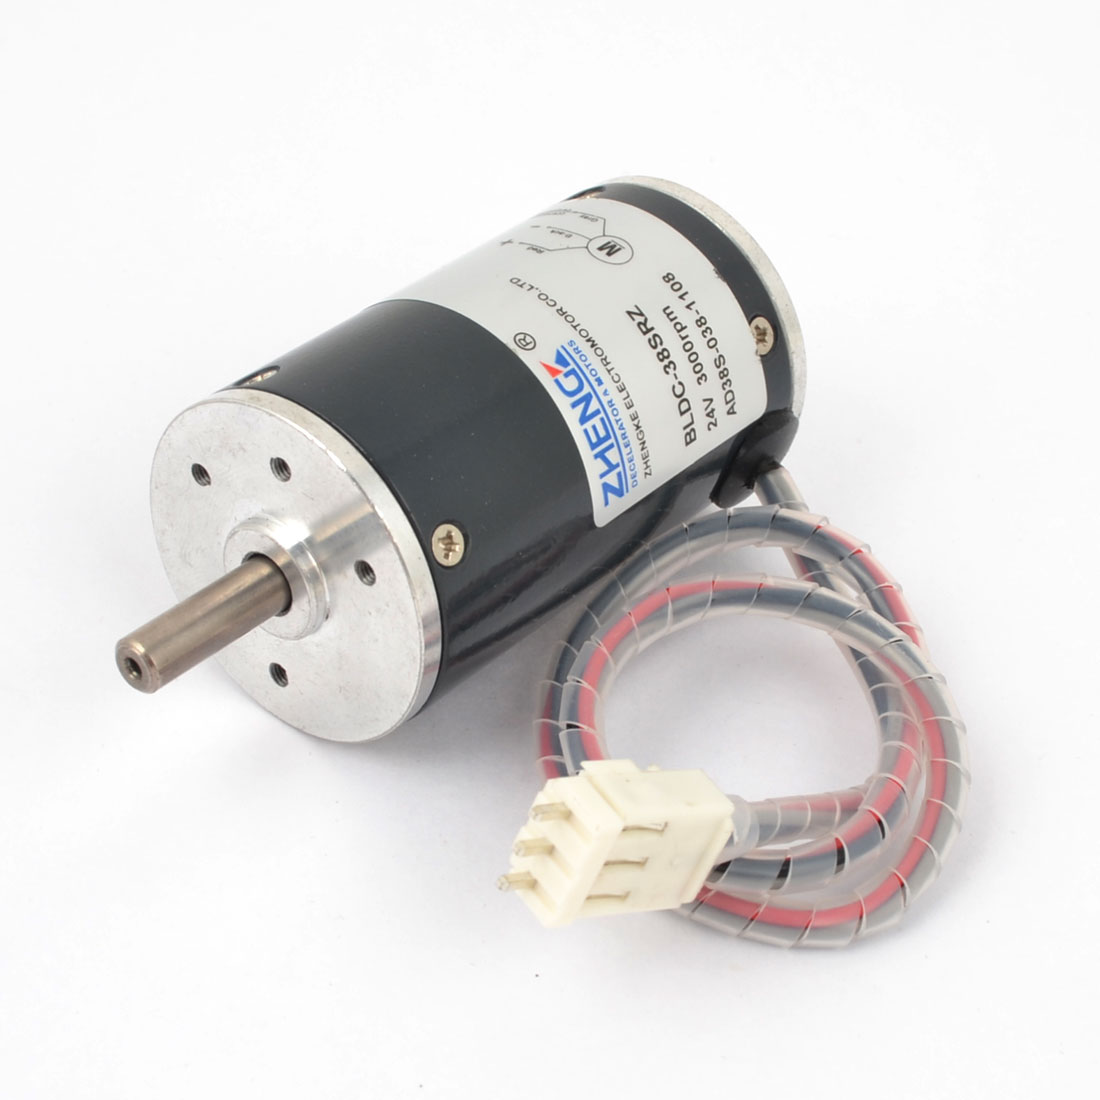 DC 24V 3000RPM Speed 38mm Diameter Low Noise Brushless Motor